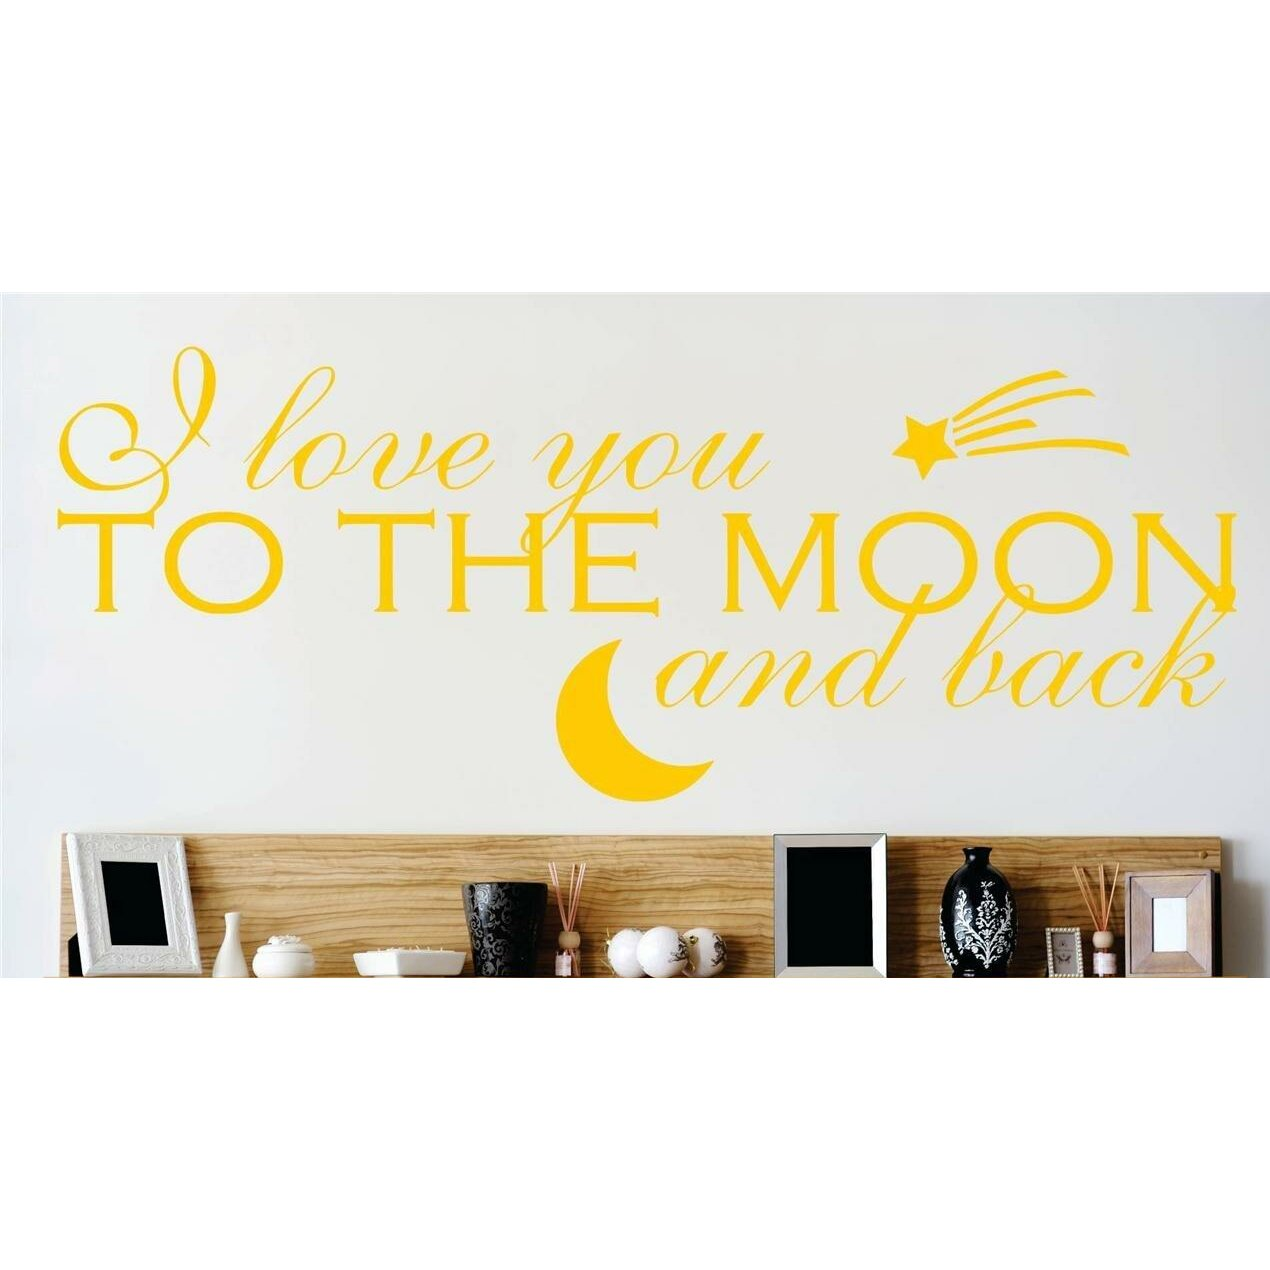 I Love You Quotes: Design With Vinyl I Love You To The Moon And Back Quote